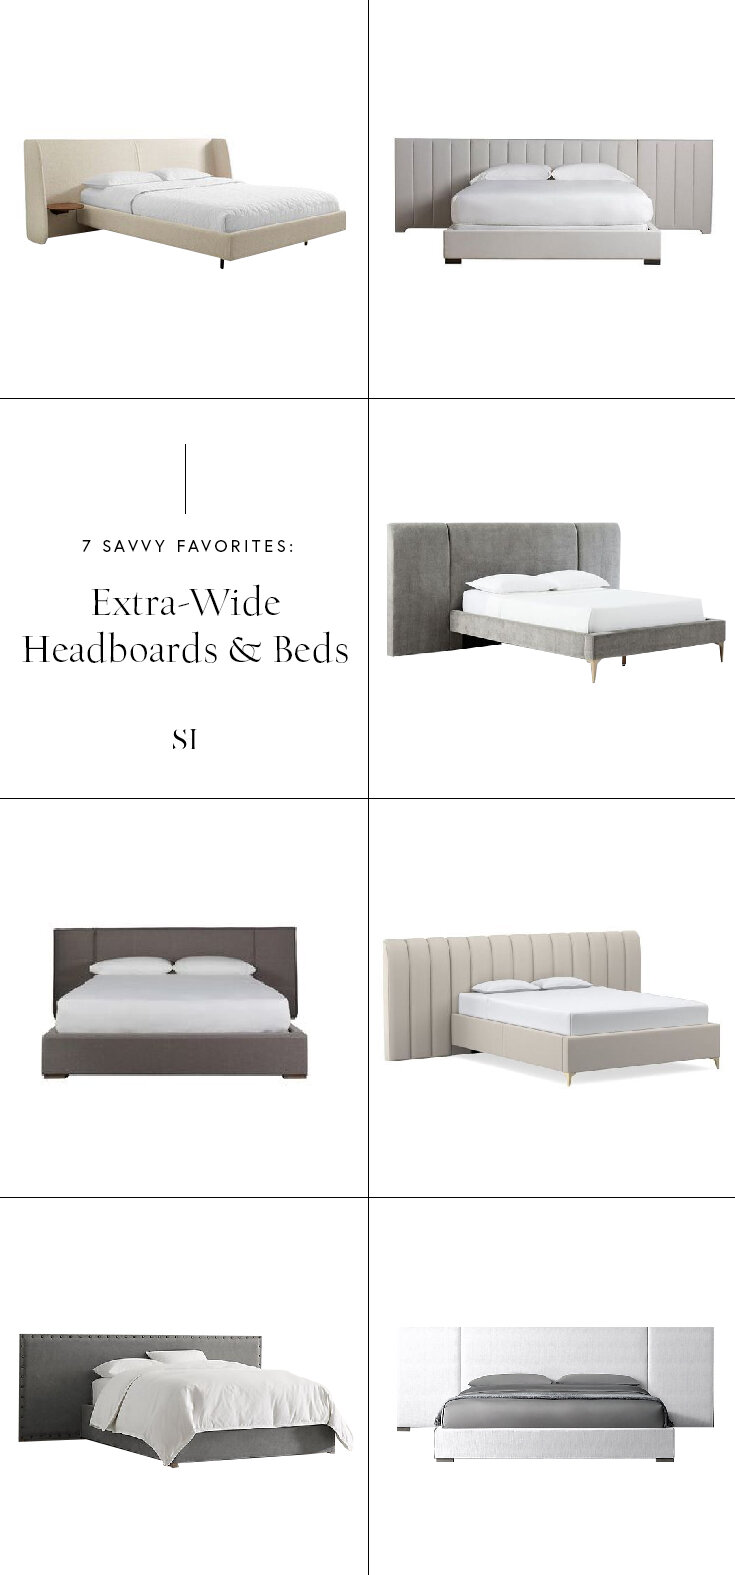 Savvy Favorites Extended Extra Wide Headboards For A Modern Bedroom The Savvy Heart